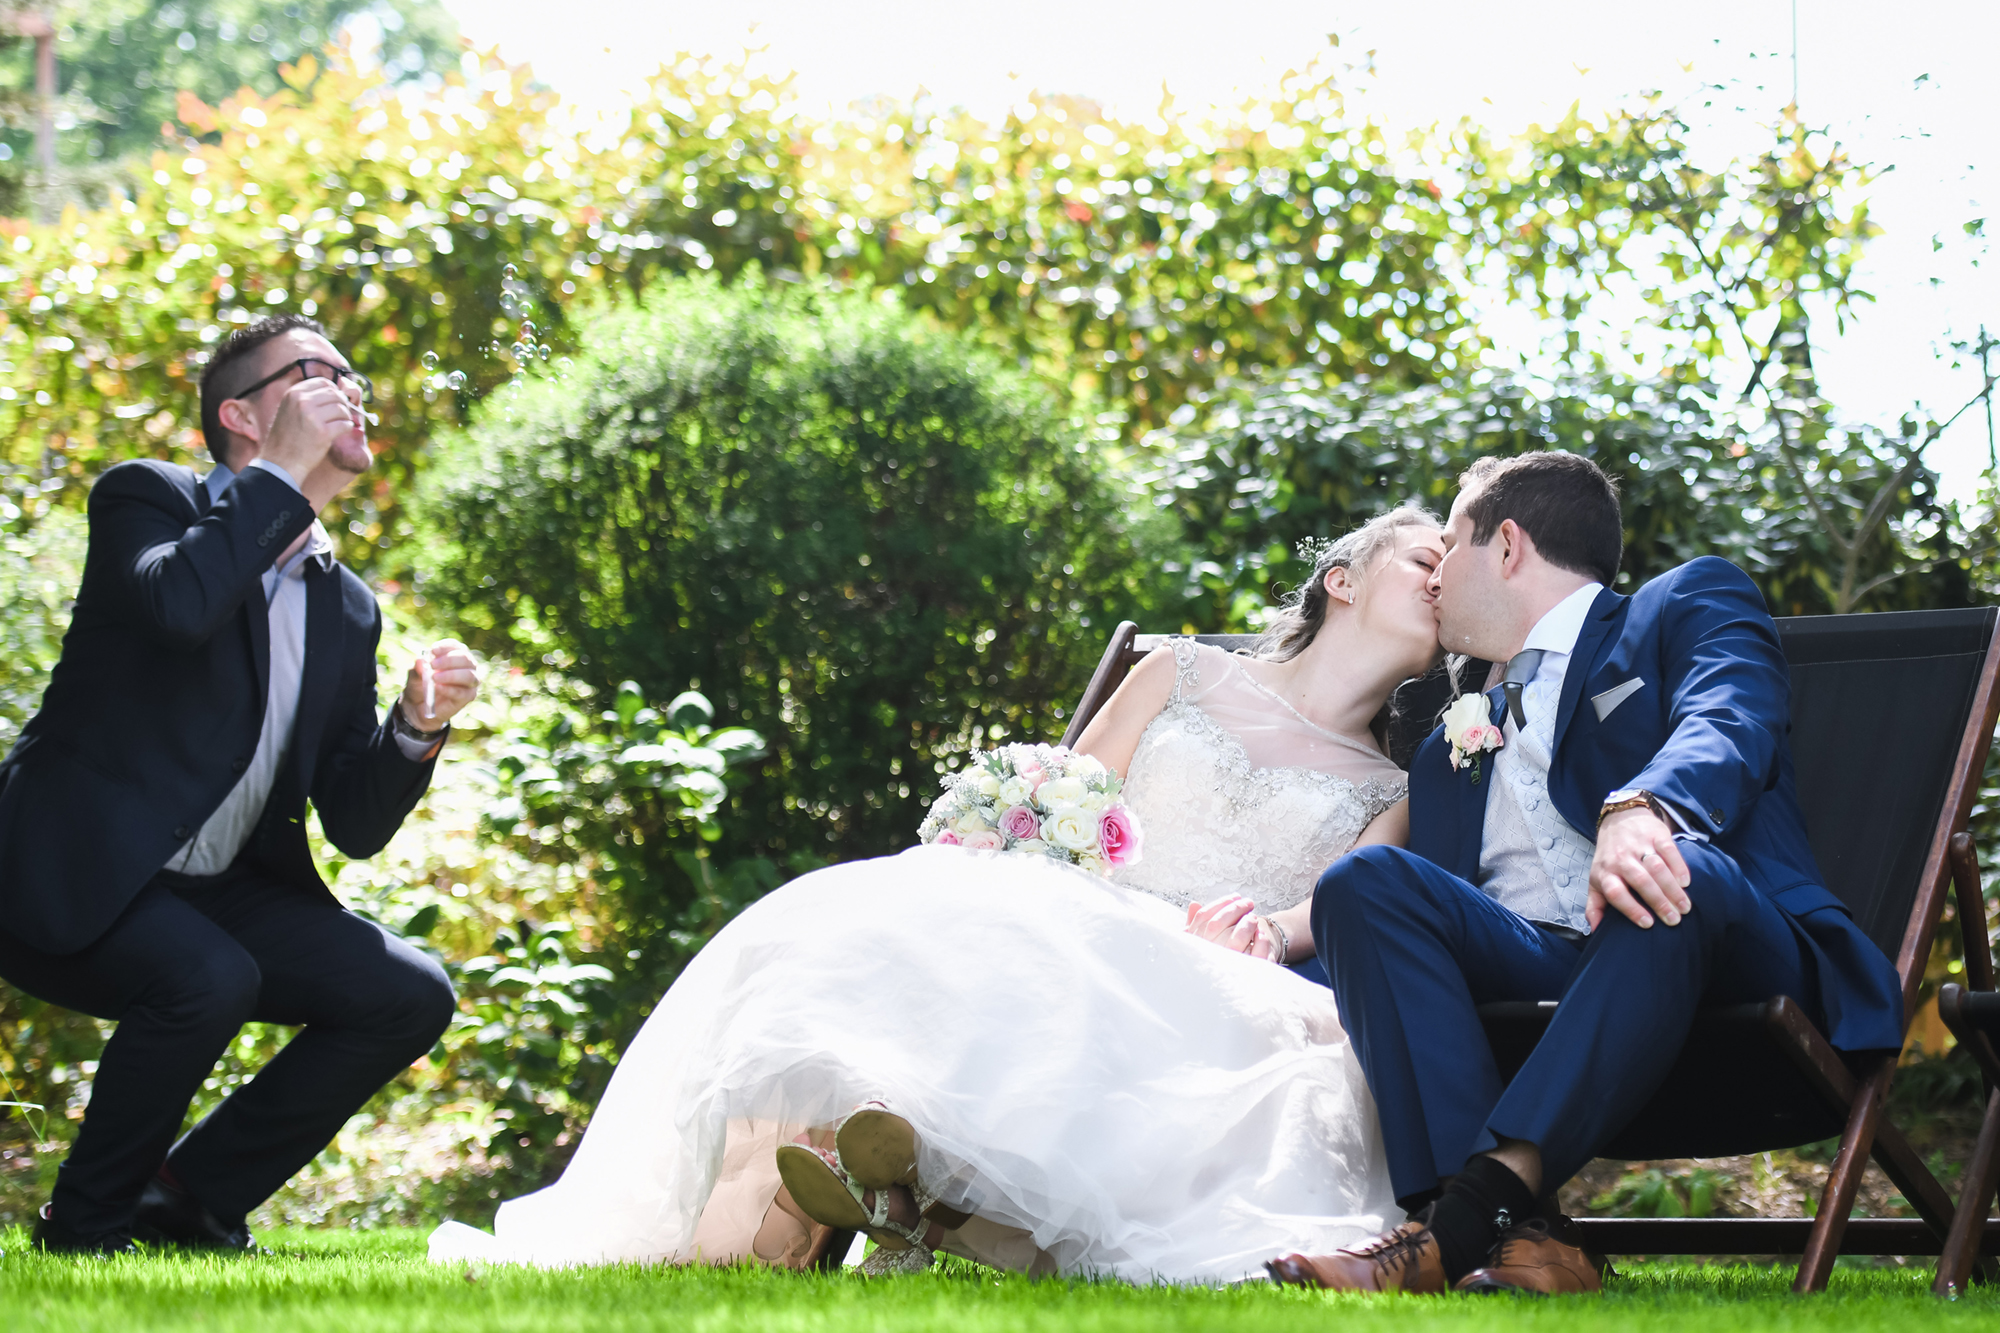 wickwoods country club wedding with couple kissing in deckchair